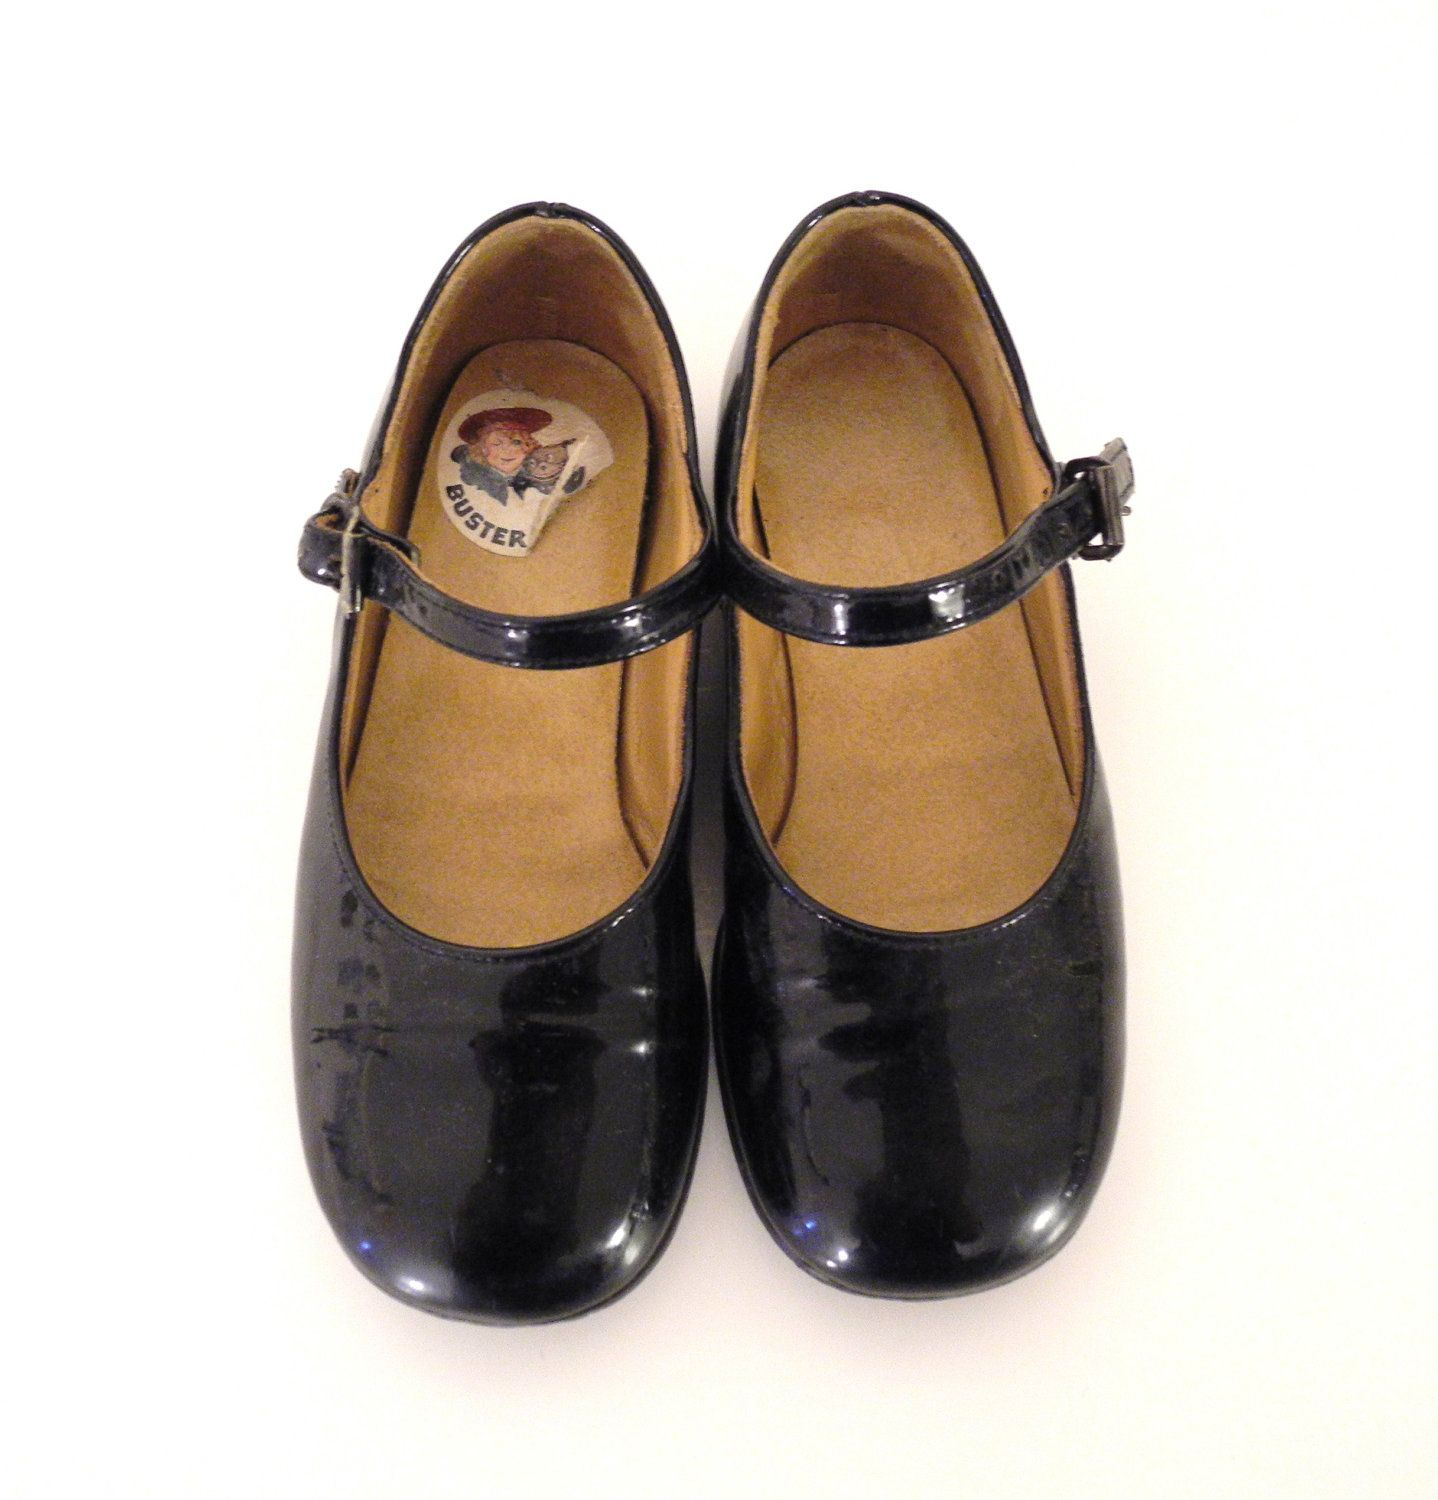 Black patent leather Mary Jane shoes by Buster Brown from the 1960s